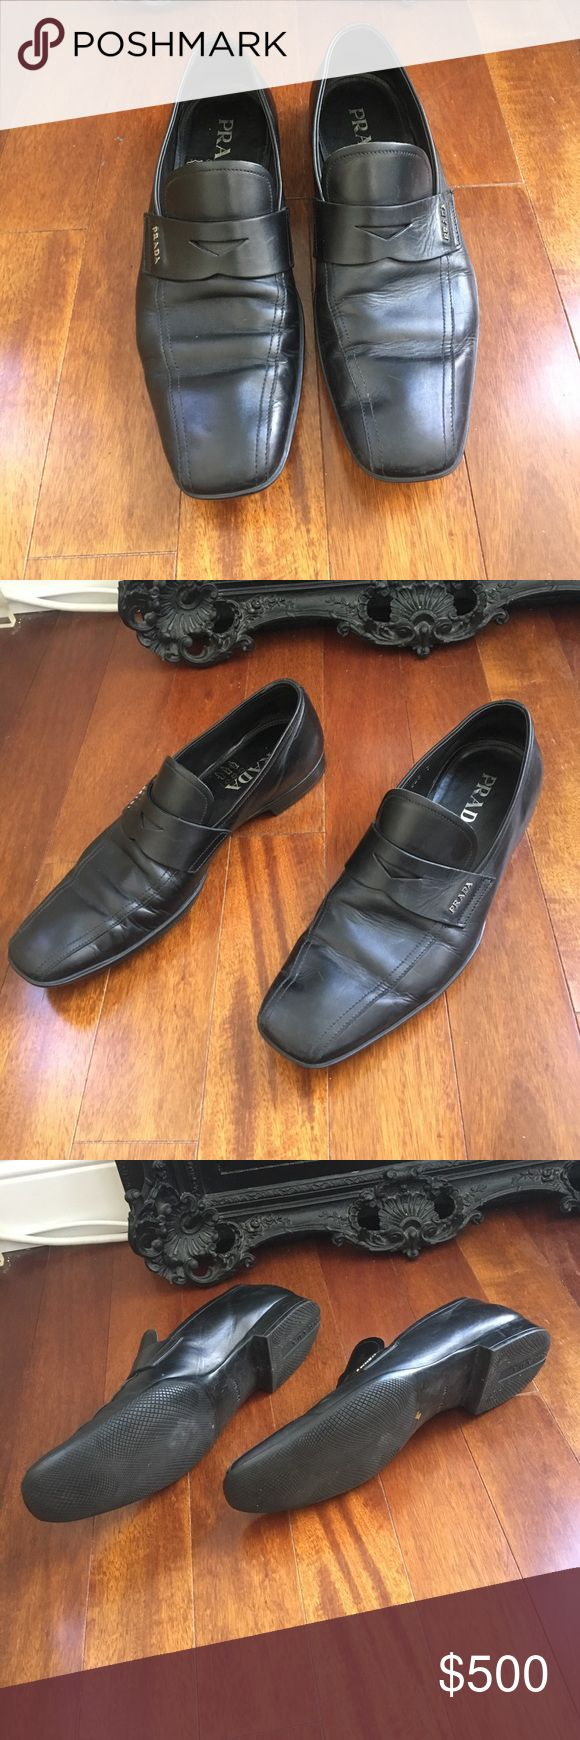 Prada Black Leather Loafers - Size 7 Prada Black Leather Loafers - Size 7 Minor scuffs and creasing Prada Shoes Loafers & Slip-Ons